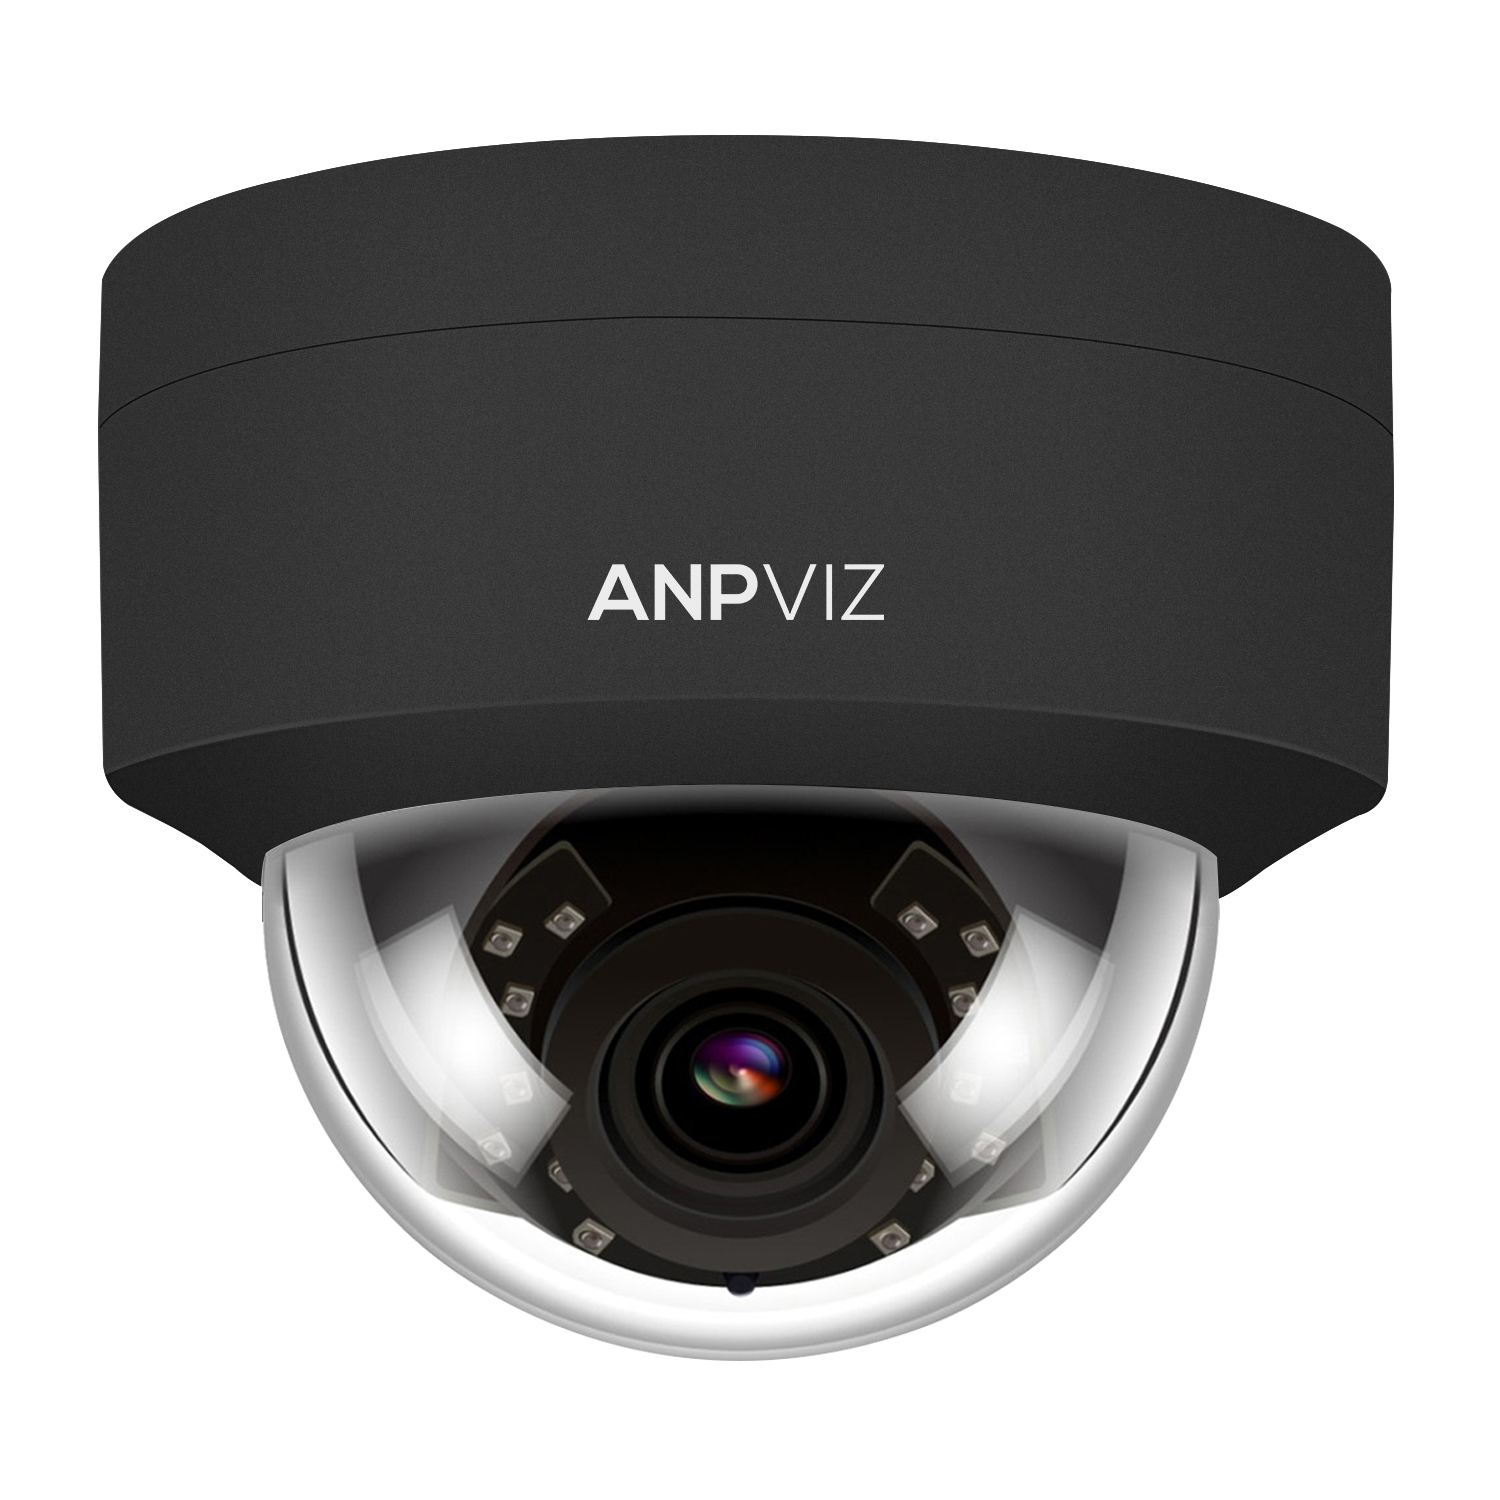 (Hikvision Compatible) Anpviz 5MP H.265 IR Dome IP Camera PoE, IP Security Camera Night Vision 98ft, Motion Alert, Weatherproof IP66 Indoor Outdoor ONVIF Compliant, Wide Angle 2.8mm Black (IPC-D250B)